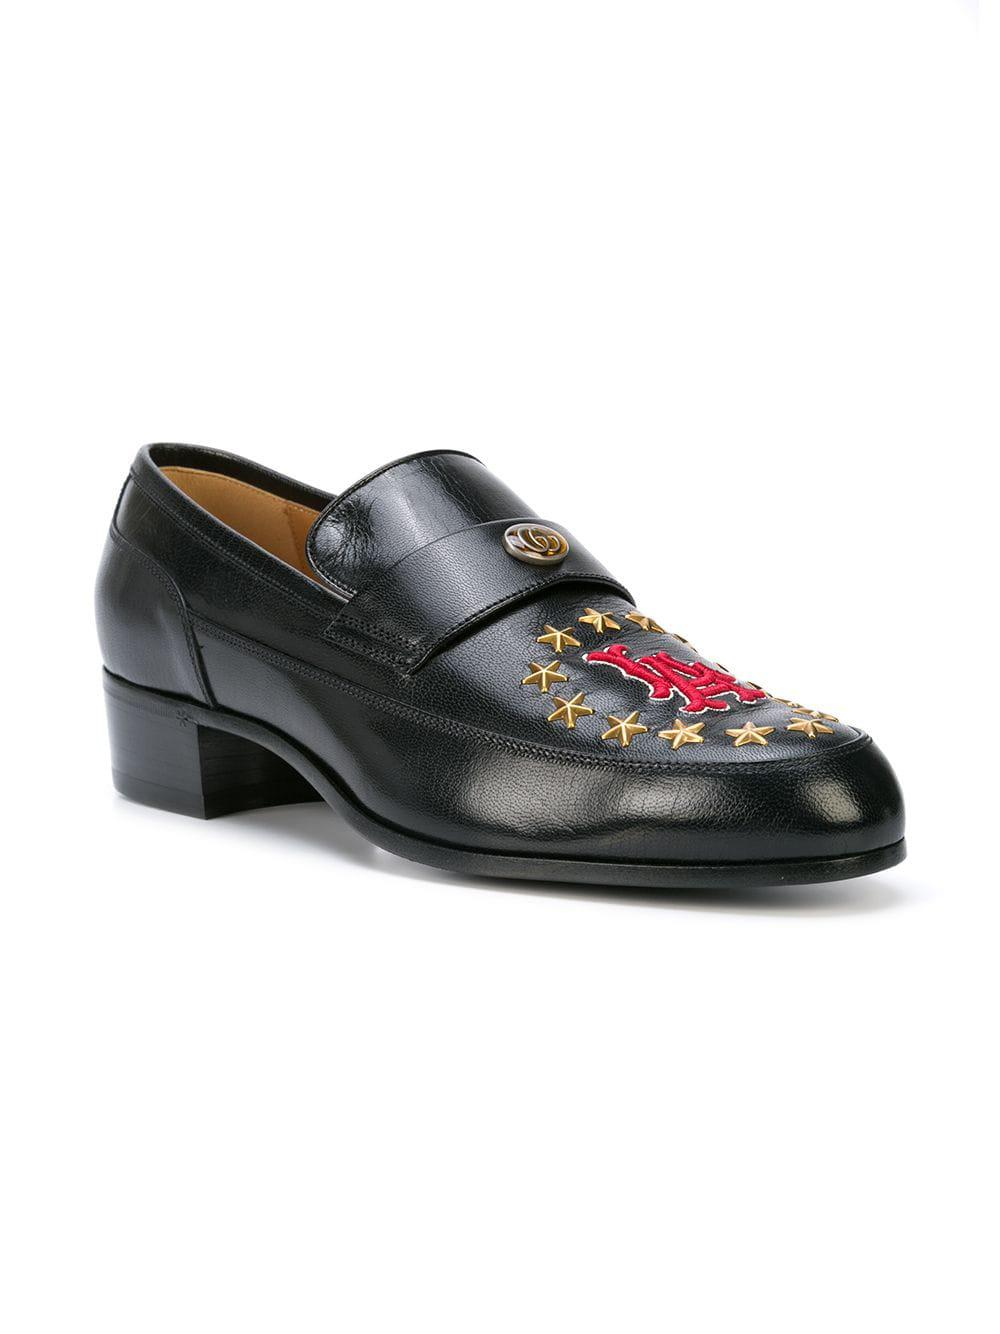 cf1f02e8de2 Lyst - Gucci Leather Loafer With La Patch in Black for Men